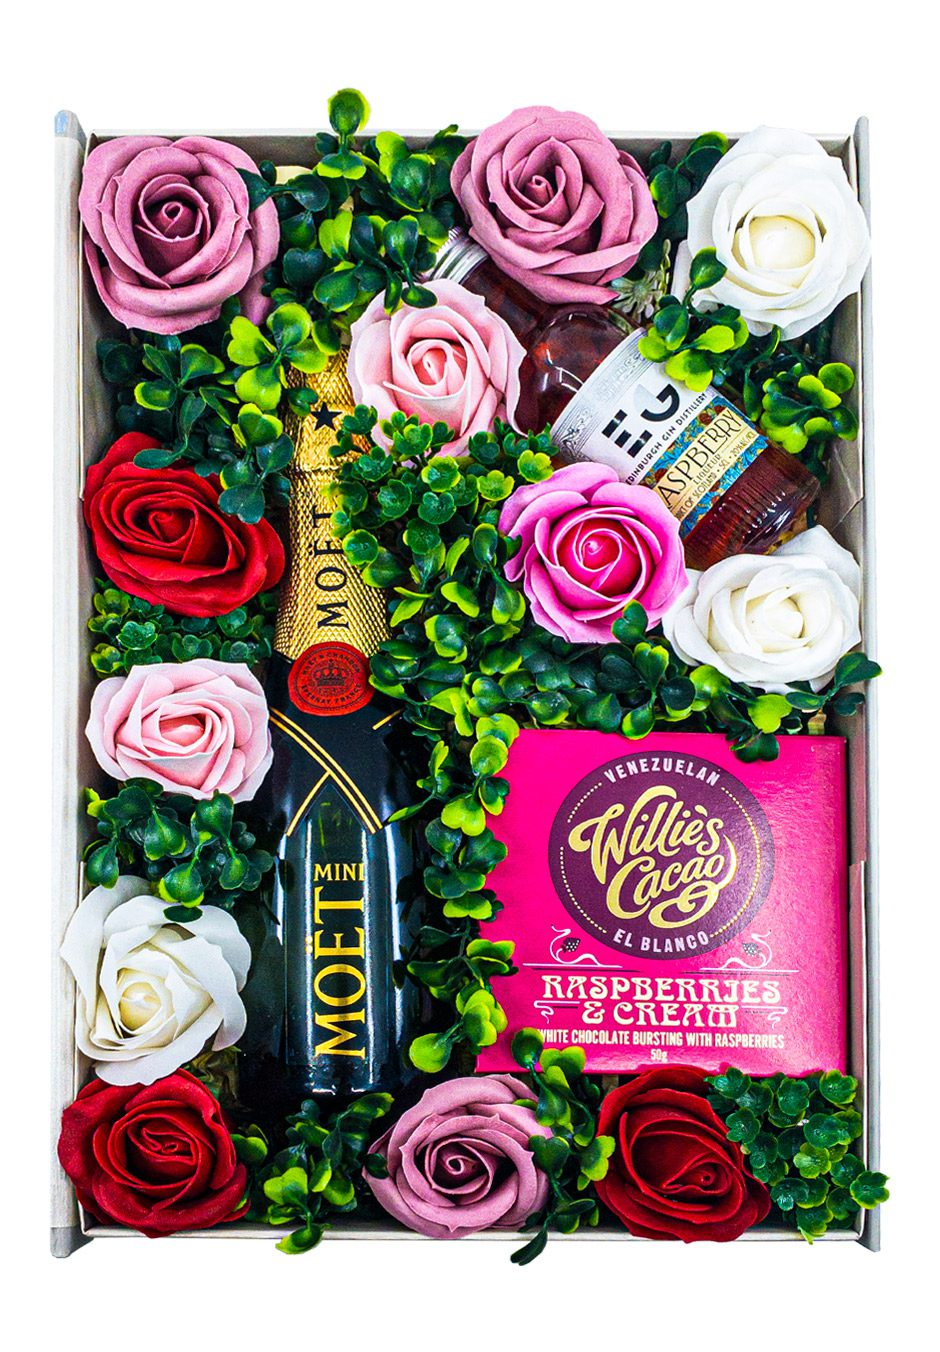 The Sweet Roses Floral Gift Set   Keico Drinks